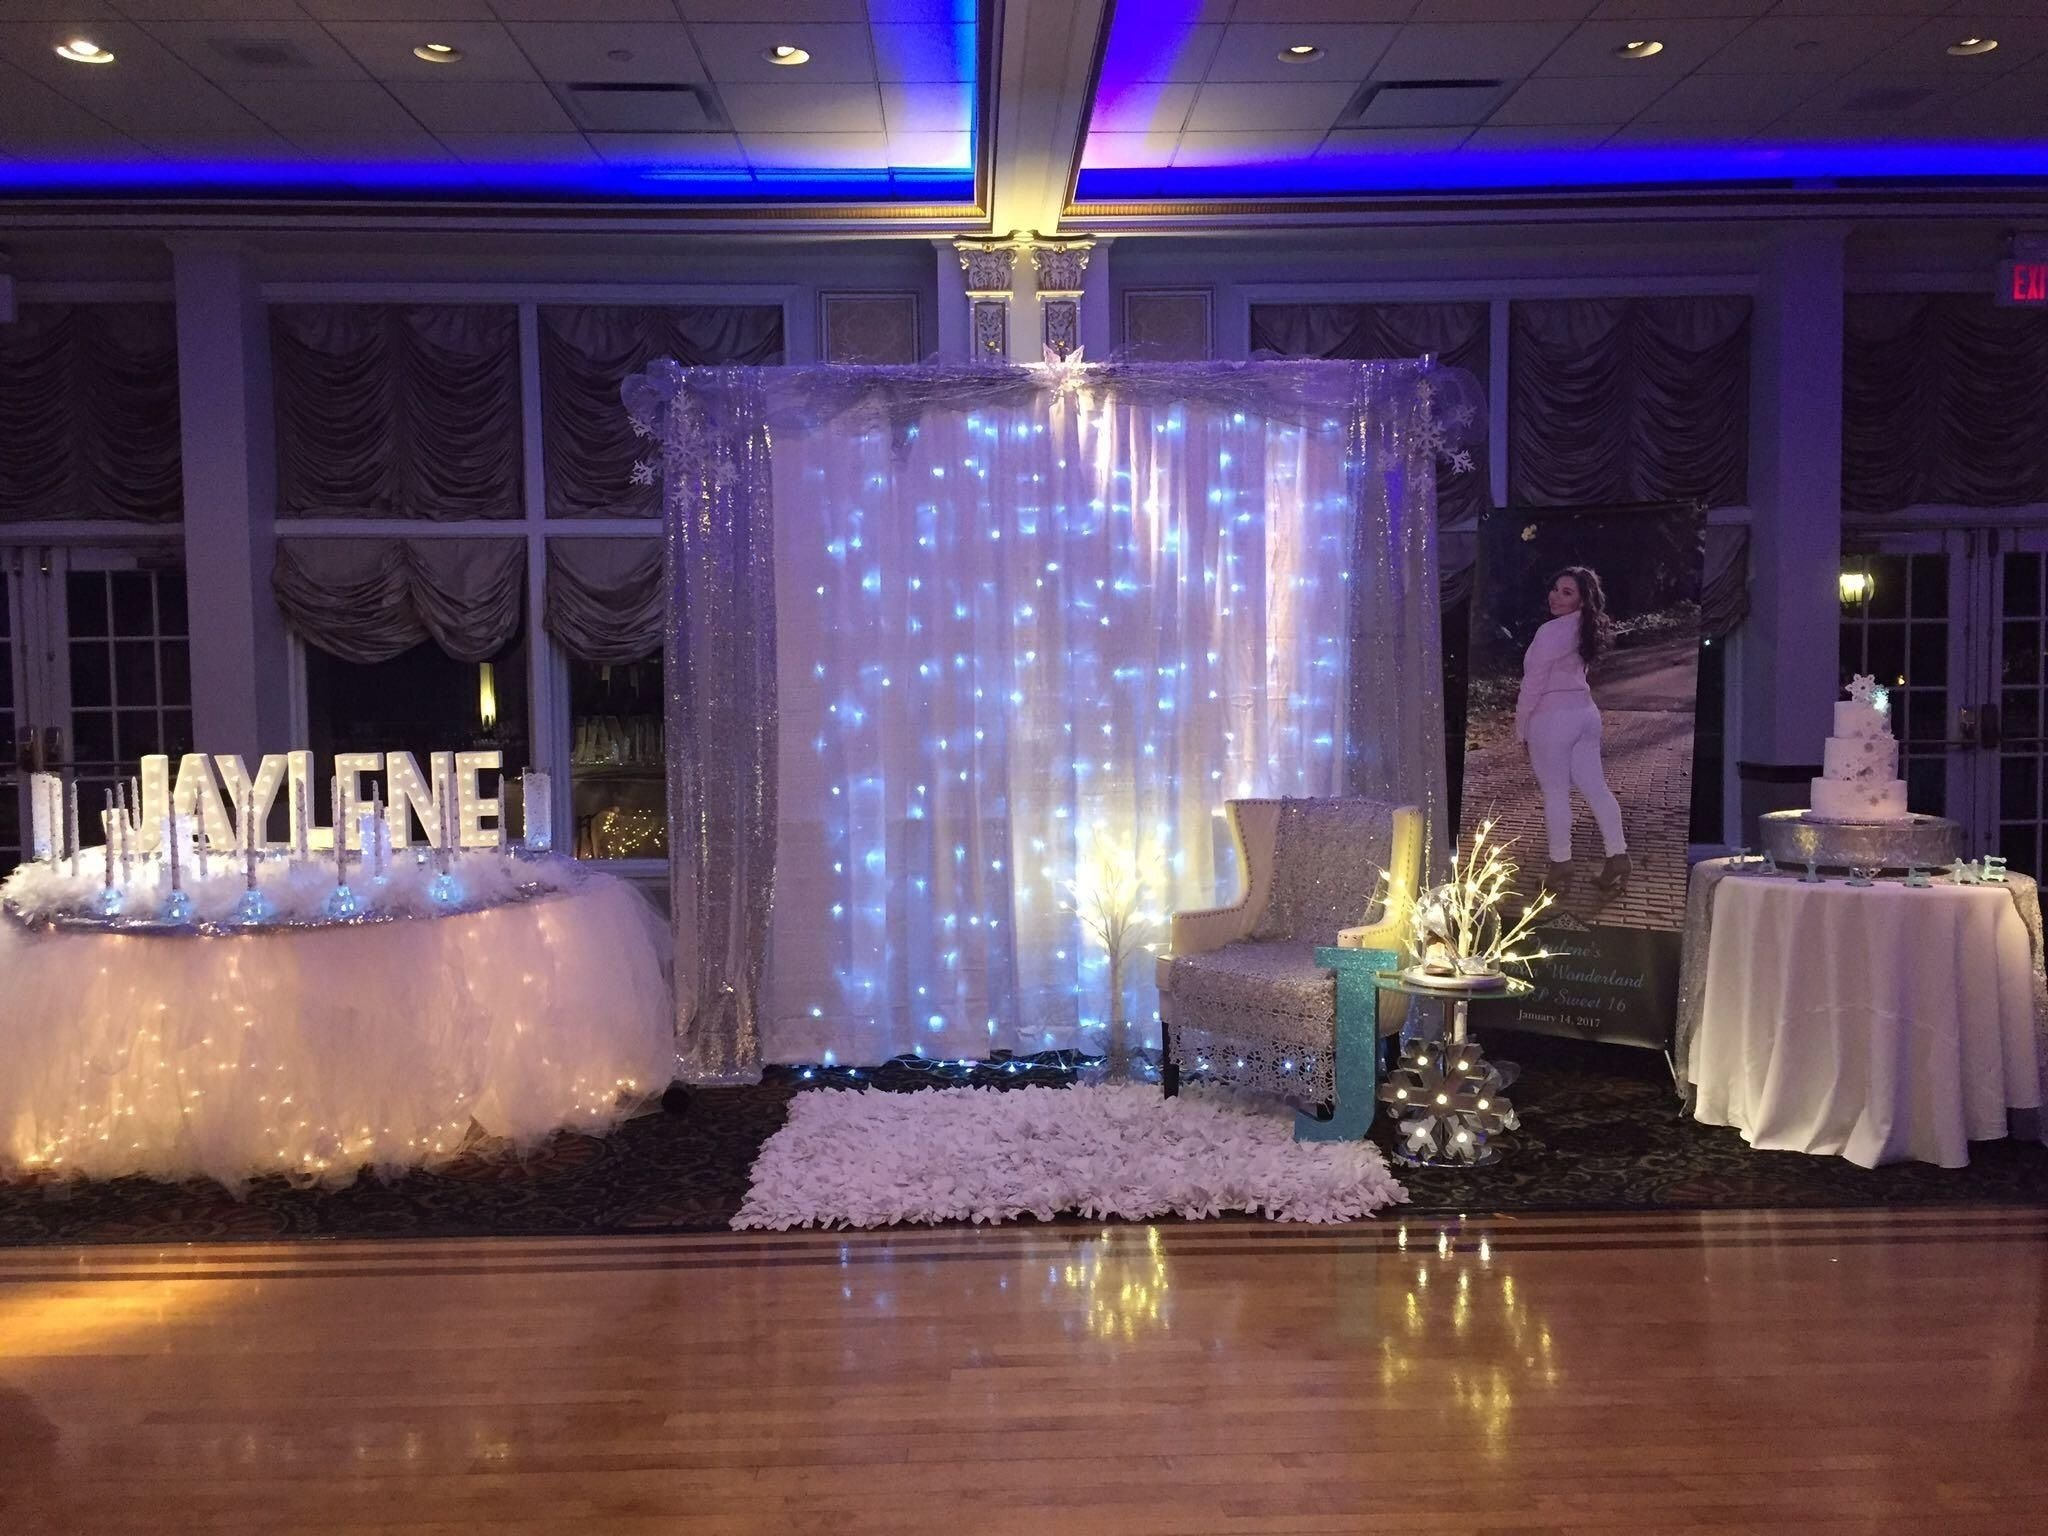 10 Best Sweet 16 Theme Ideas List backdrop for a princess winter wonderland sweet 16 winter 2020